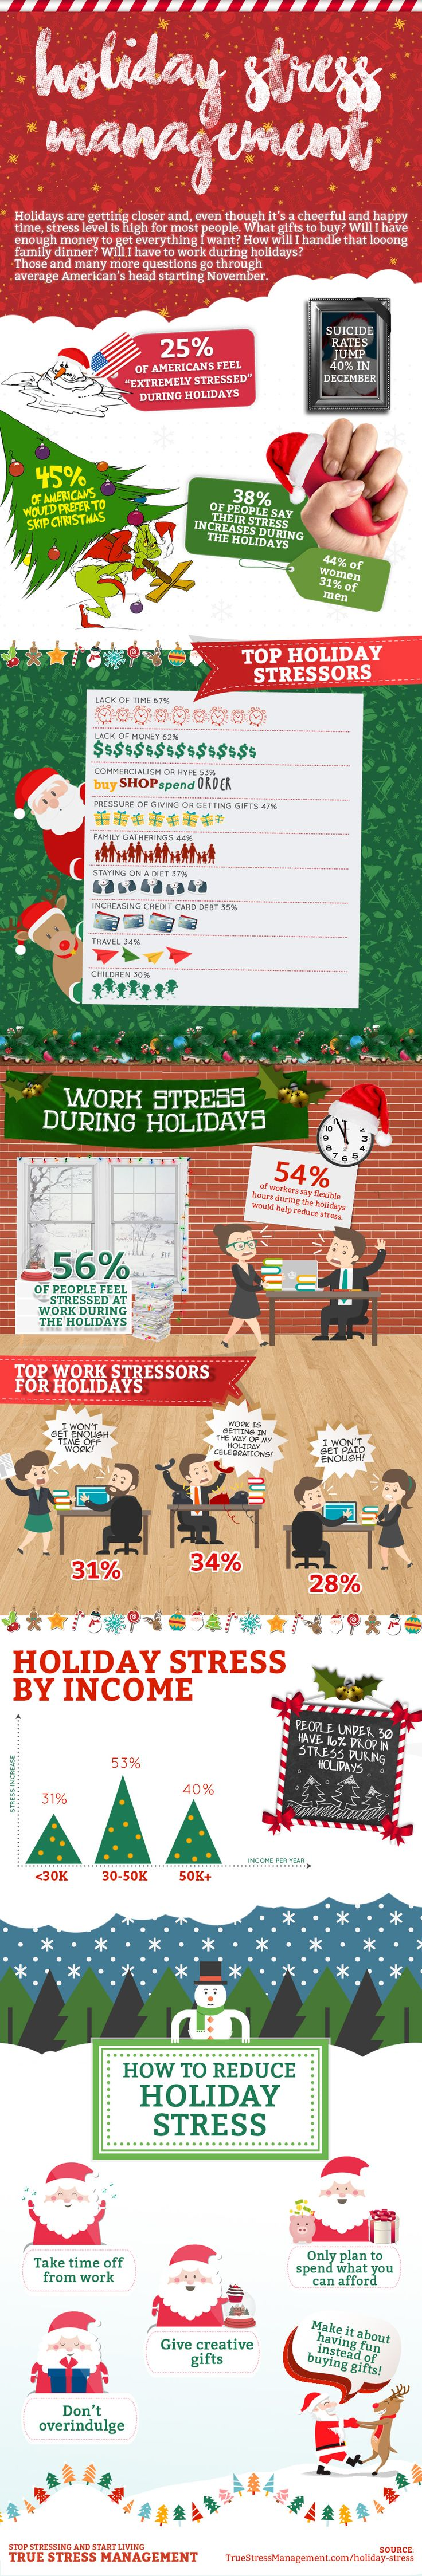 Psychology-Infographic-Holiday-Stress-Infographic-Point-Visible-Content-Marketing-Agency Psychology Infographic : Holiday Stress Infographic - Point Visible | Content Marketing Agency